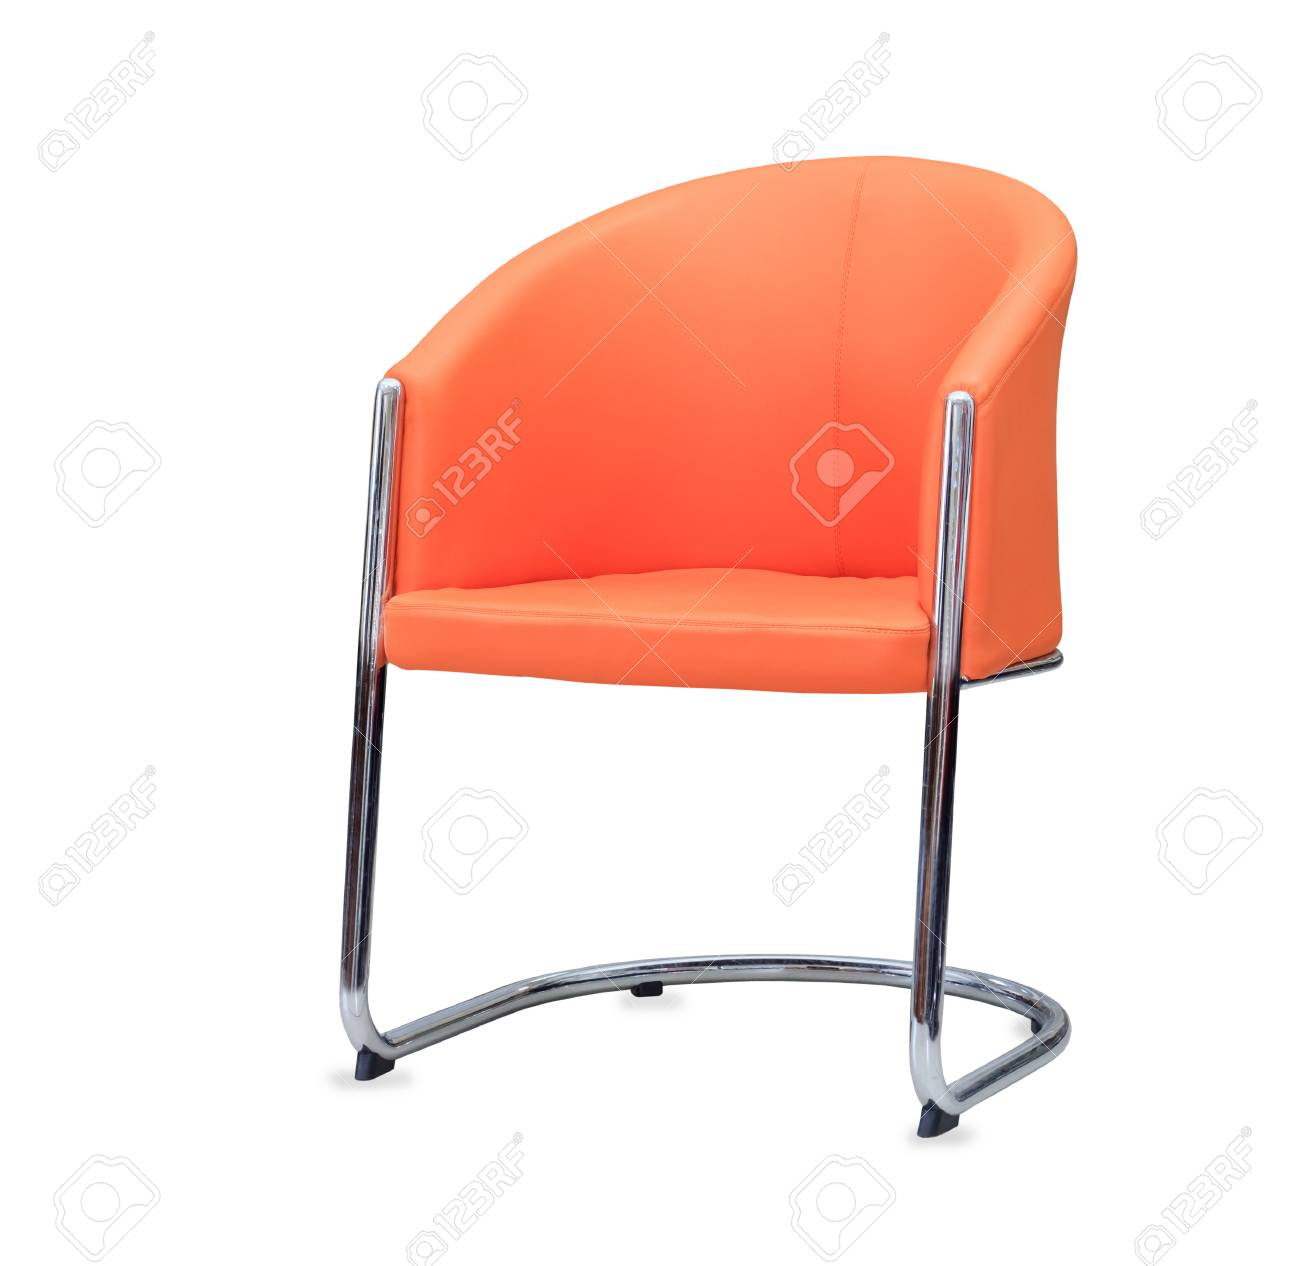 Picture of: The Office Chair From Orange Leather Isolated Stock Photo Picture And Royalty Free Image Image 31031614